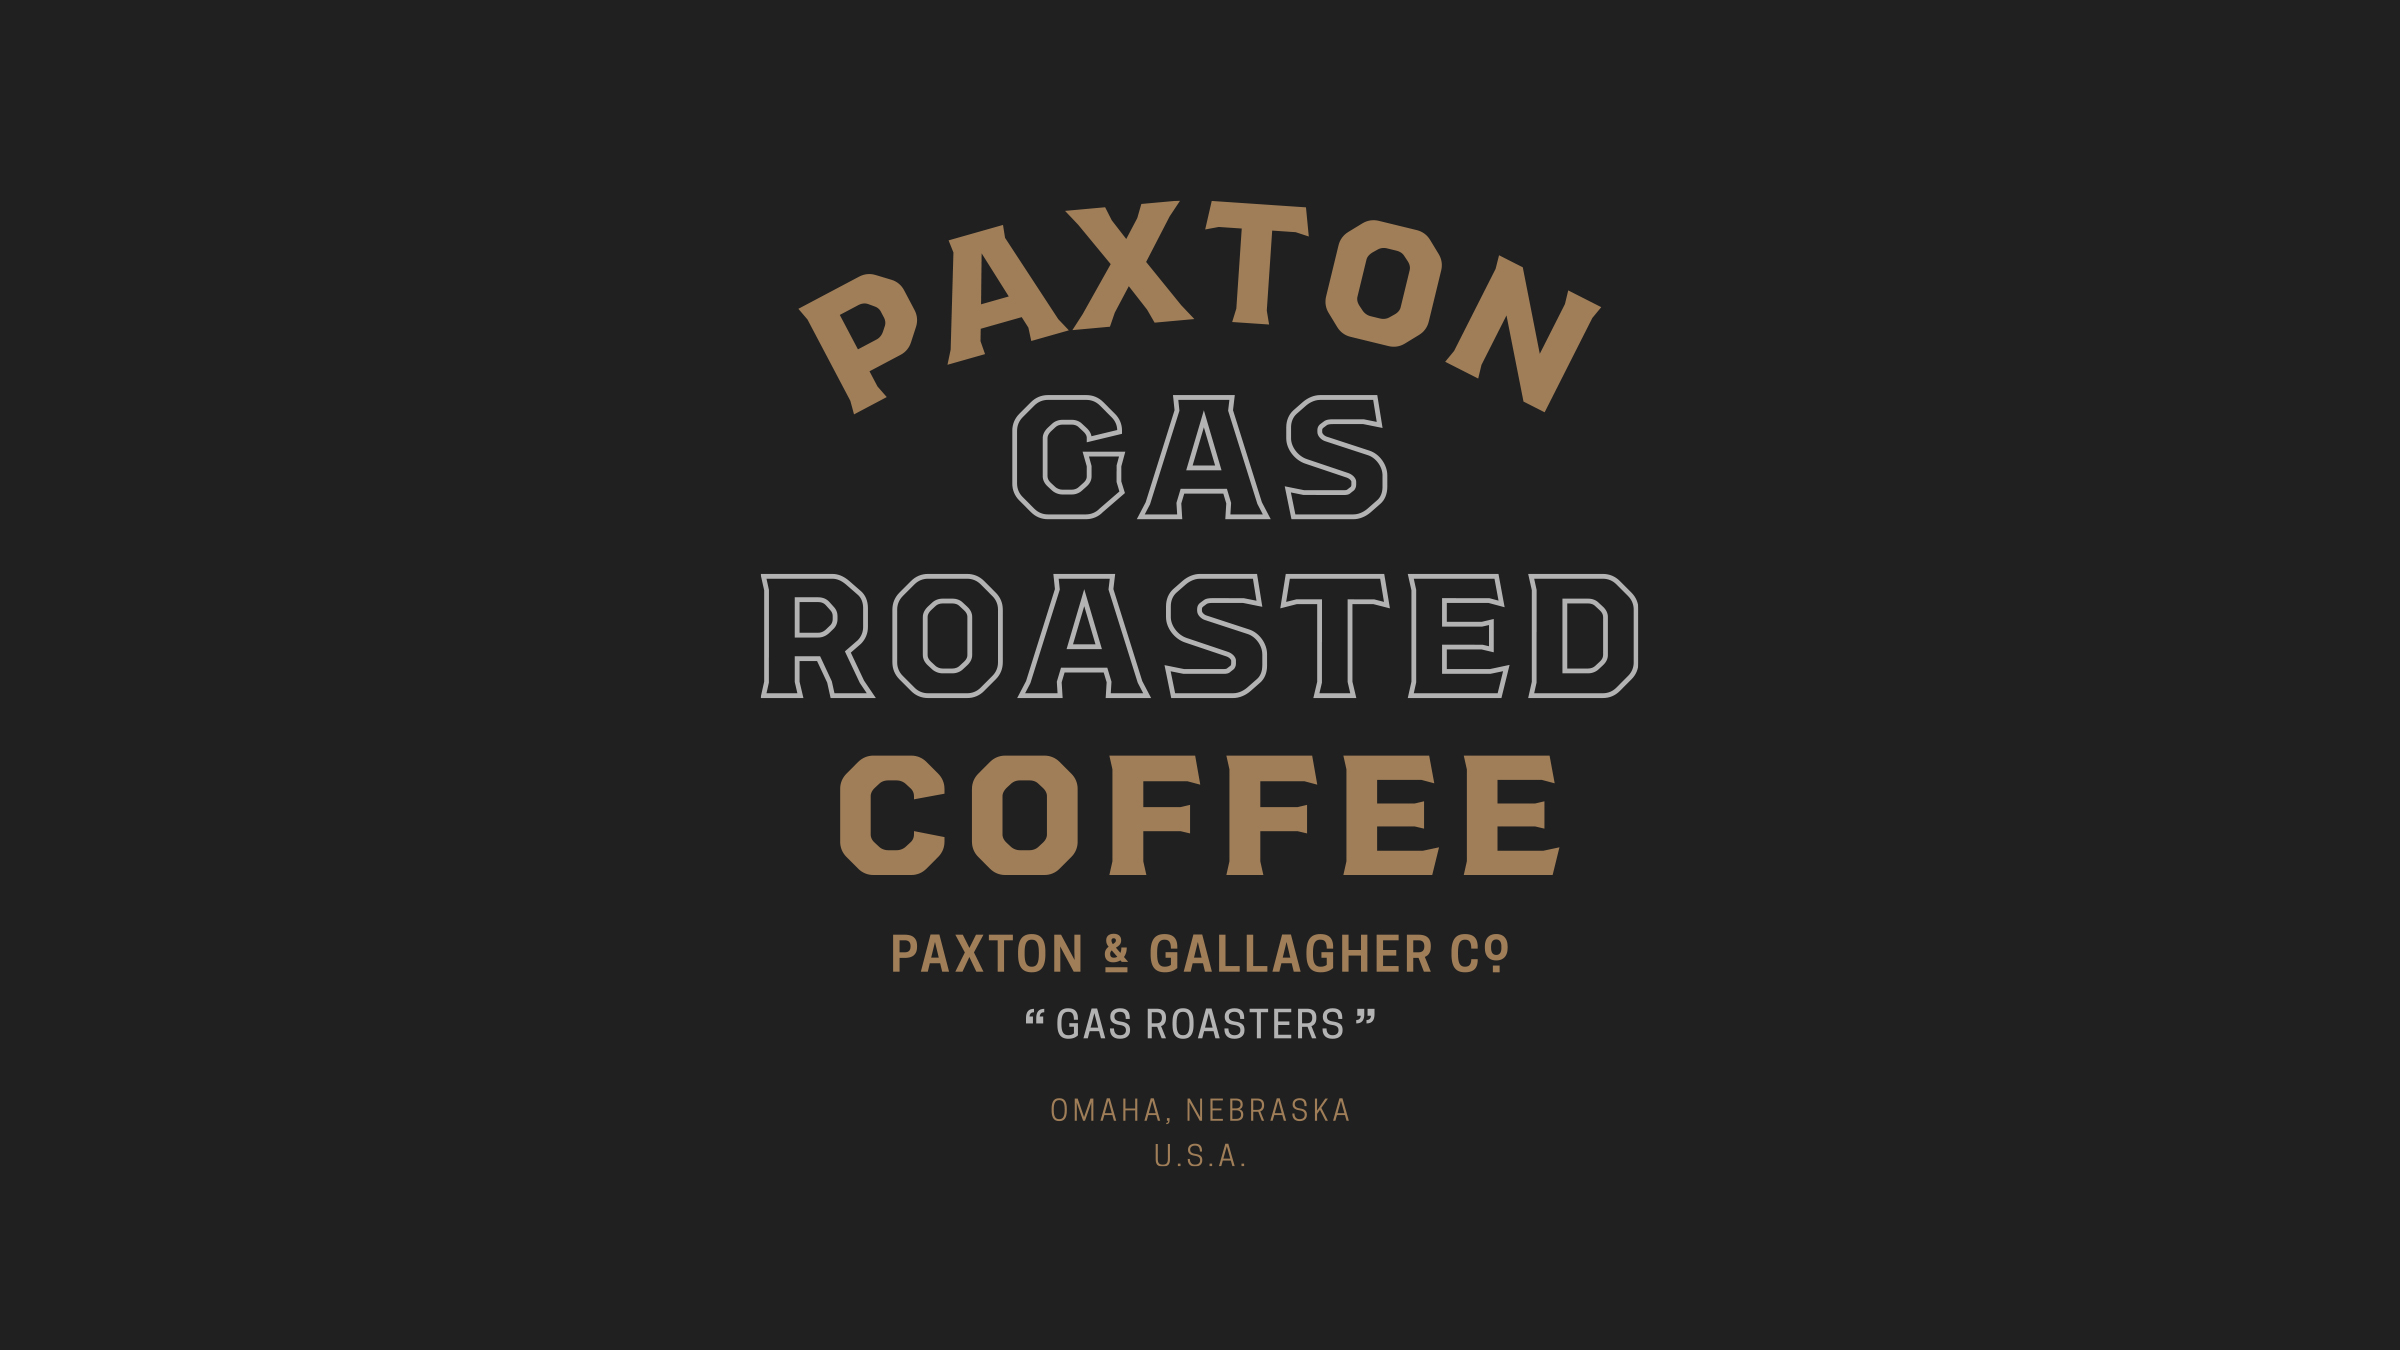 Paxton Gas Roasted Coffee brand logo gold and white on black